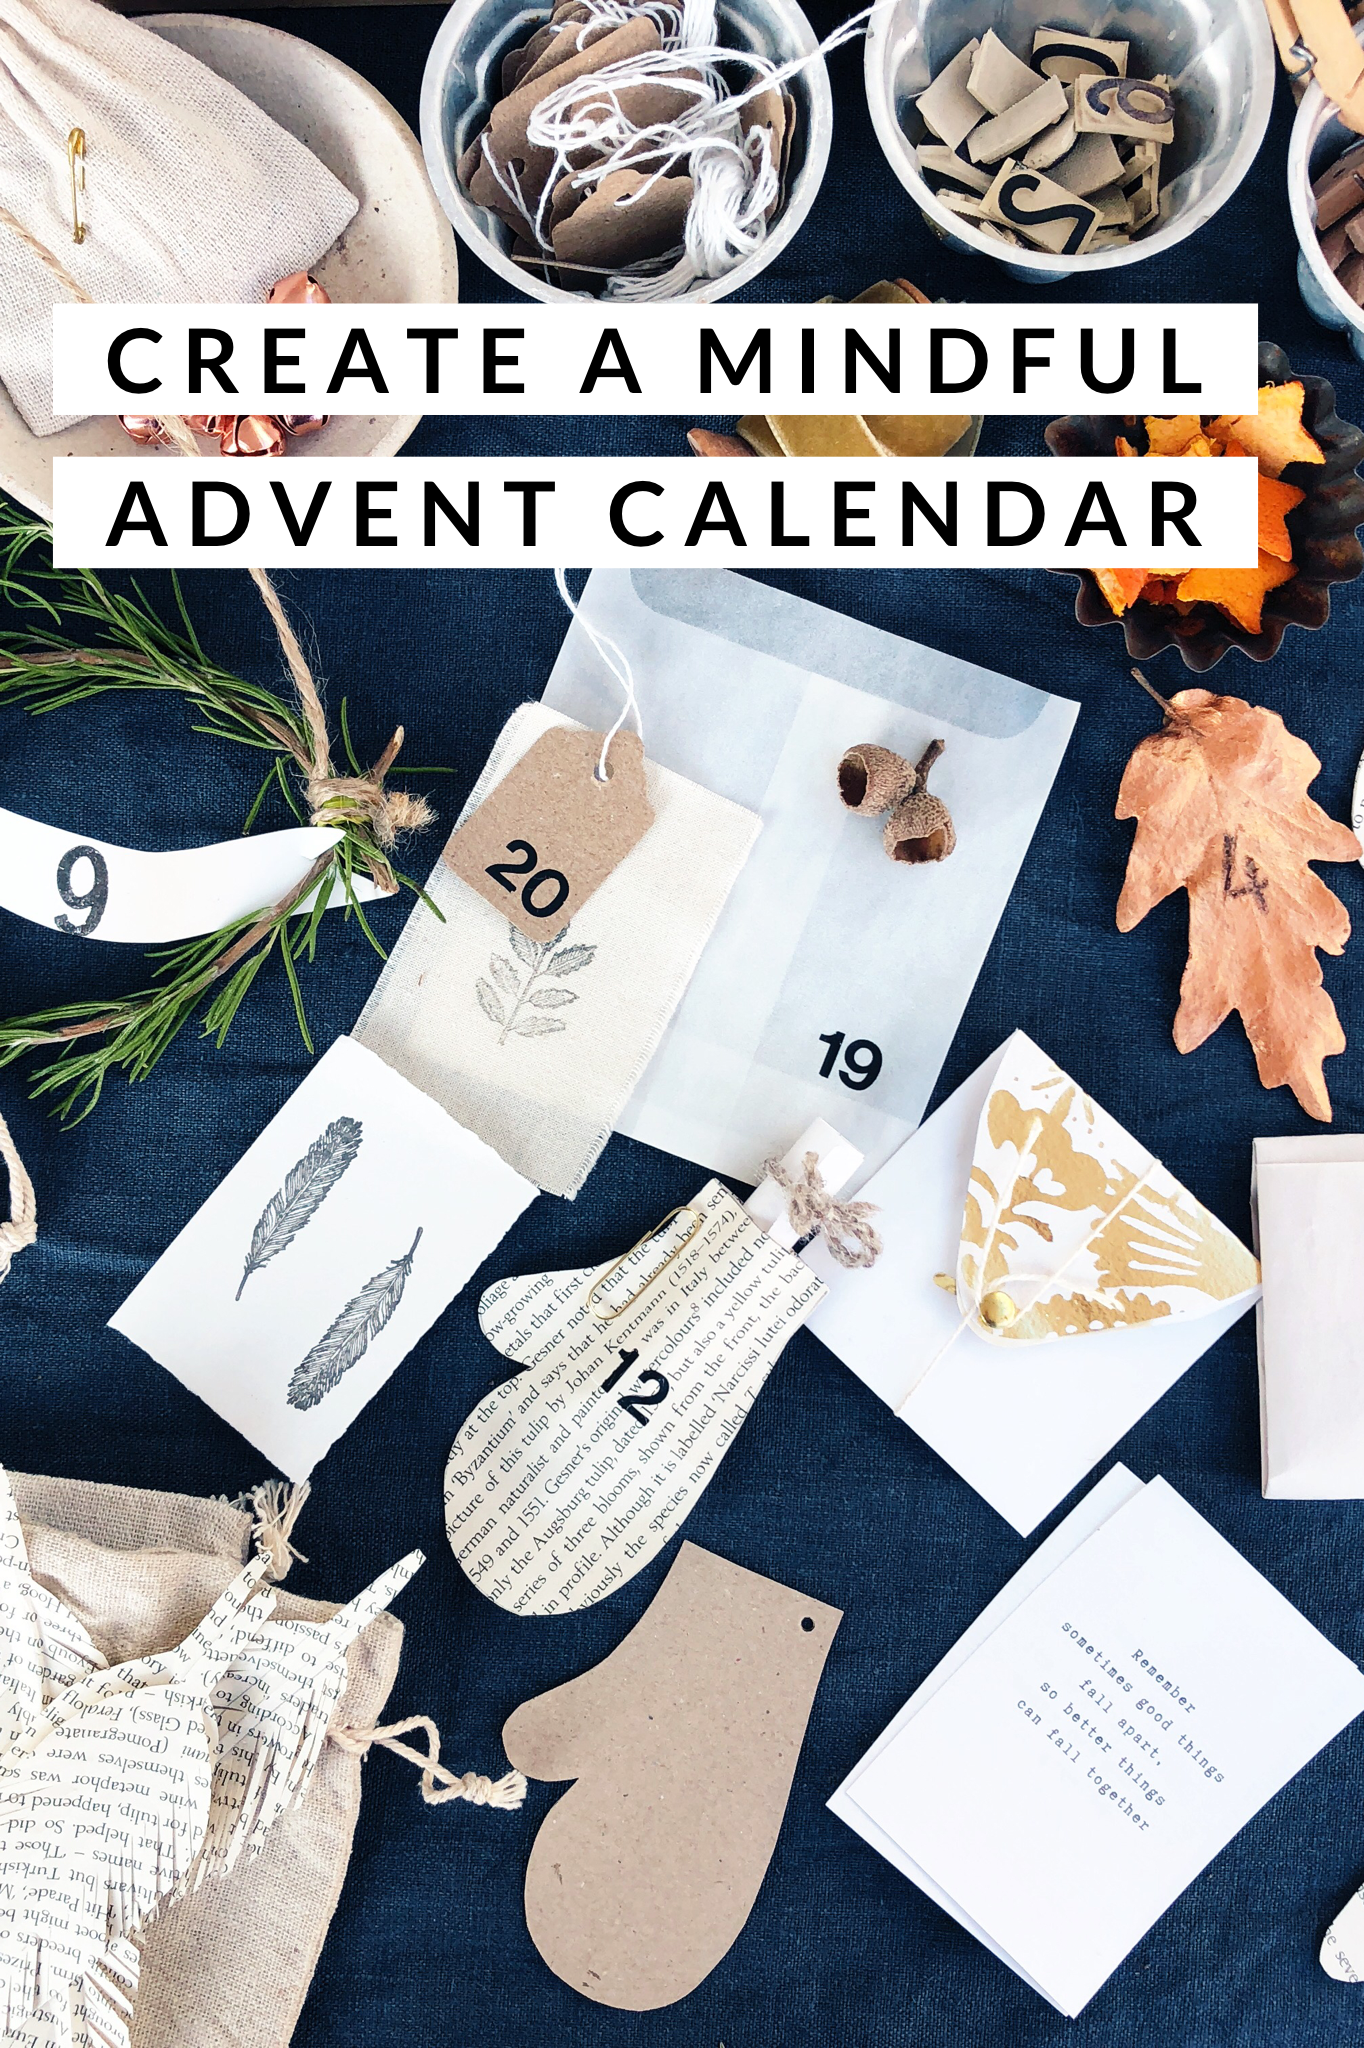 Inspiration and downloads for you to create your own Mindful Advent